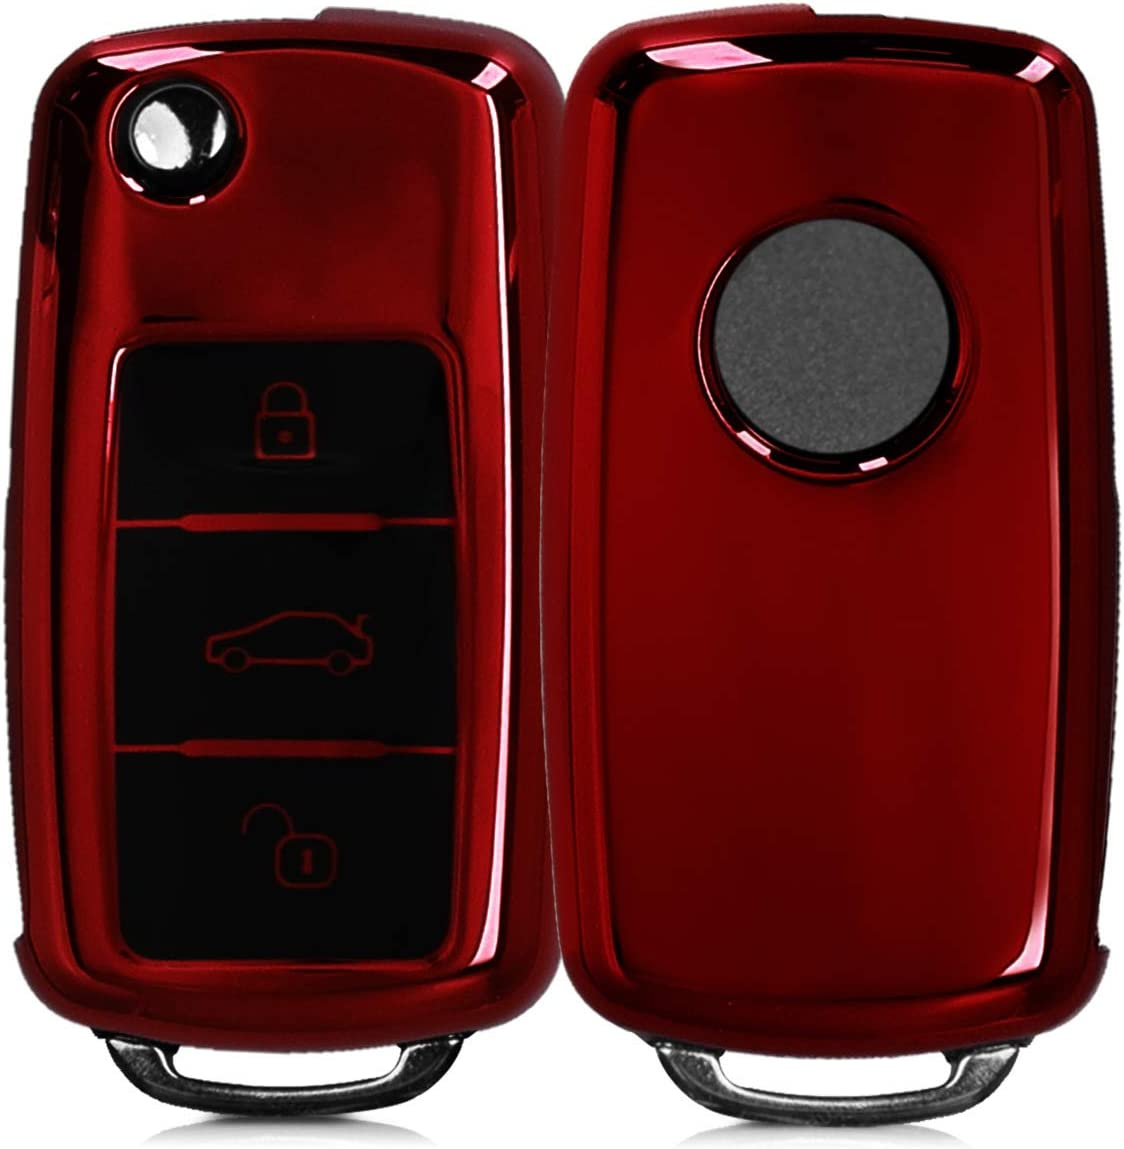 Dark Green kwmobile Car Key Cover Compatible with Ford 3 Button Car Flip Key TPU Silicone Key Fob Cover with Varnished Buttons